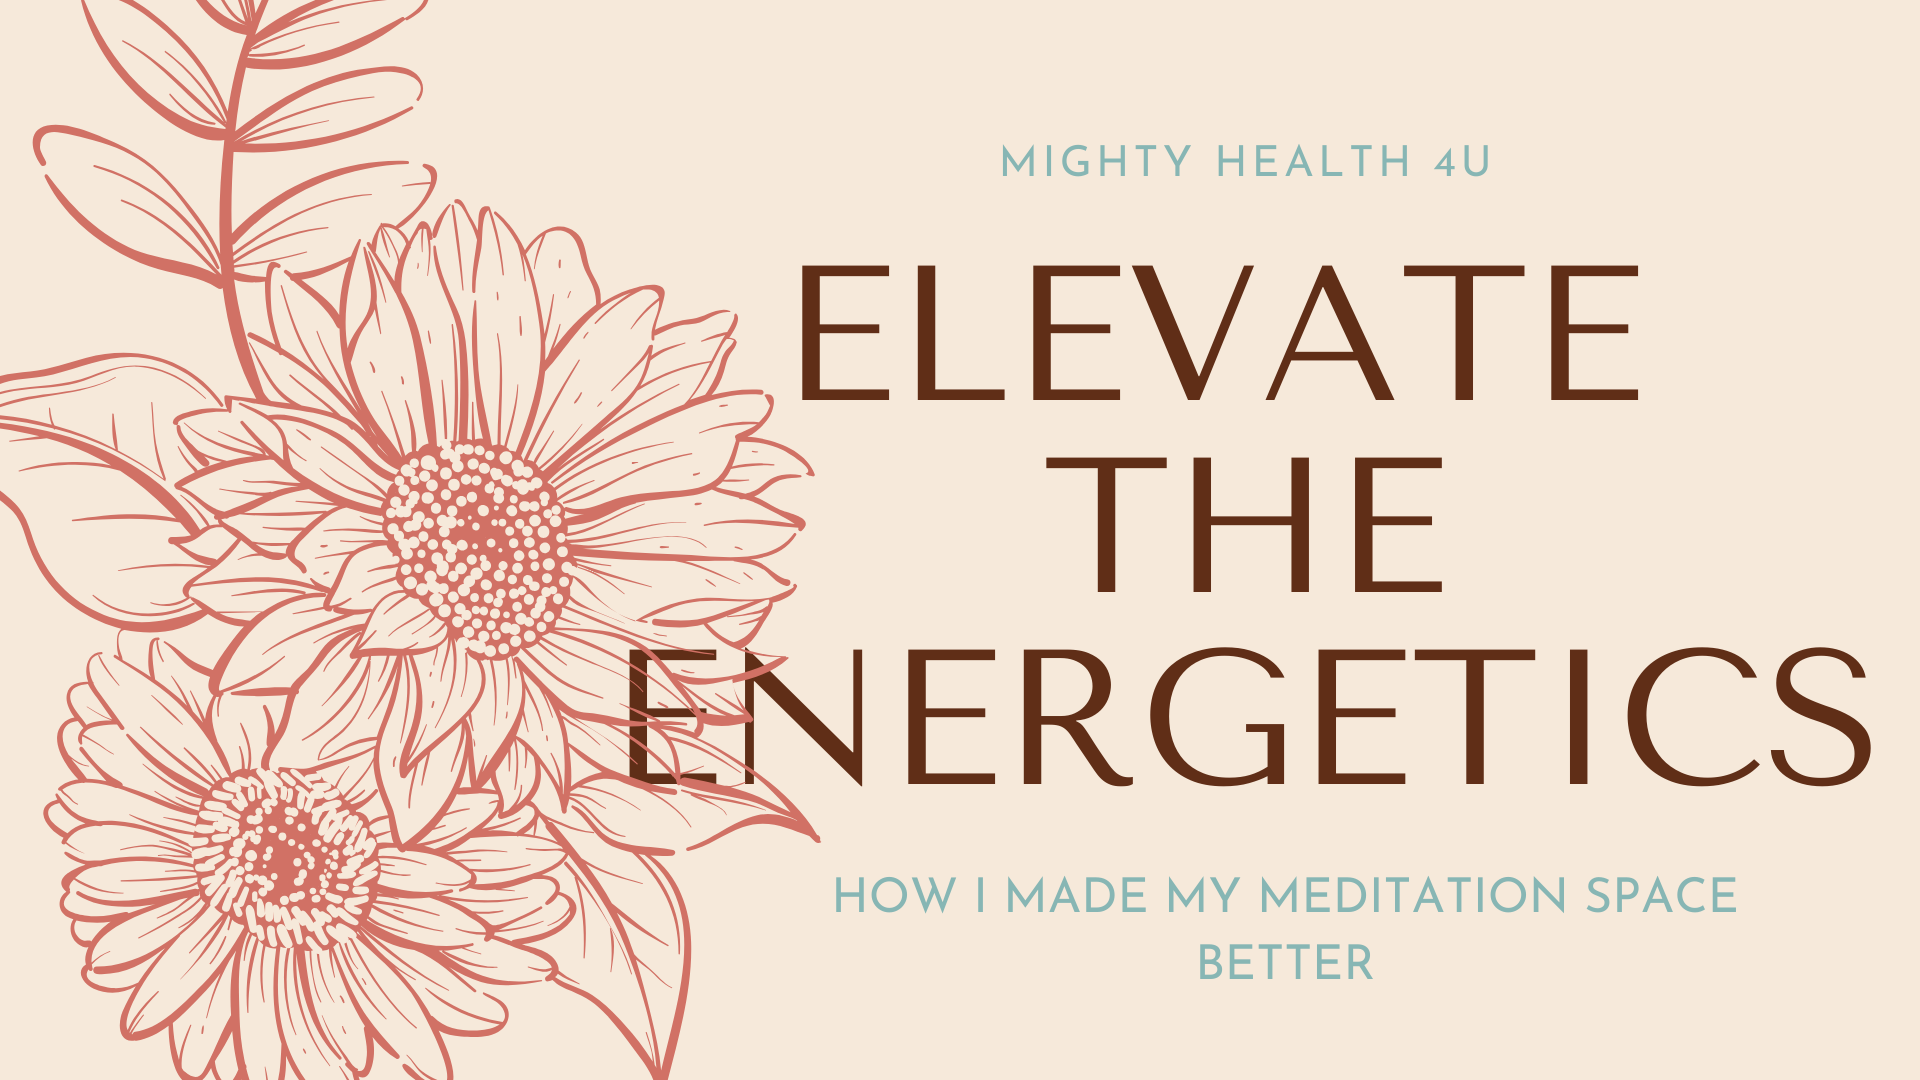 How Your 5 Senses can Elevate the Energetics of Your Meditation Space